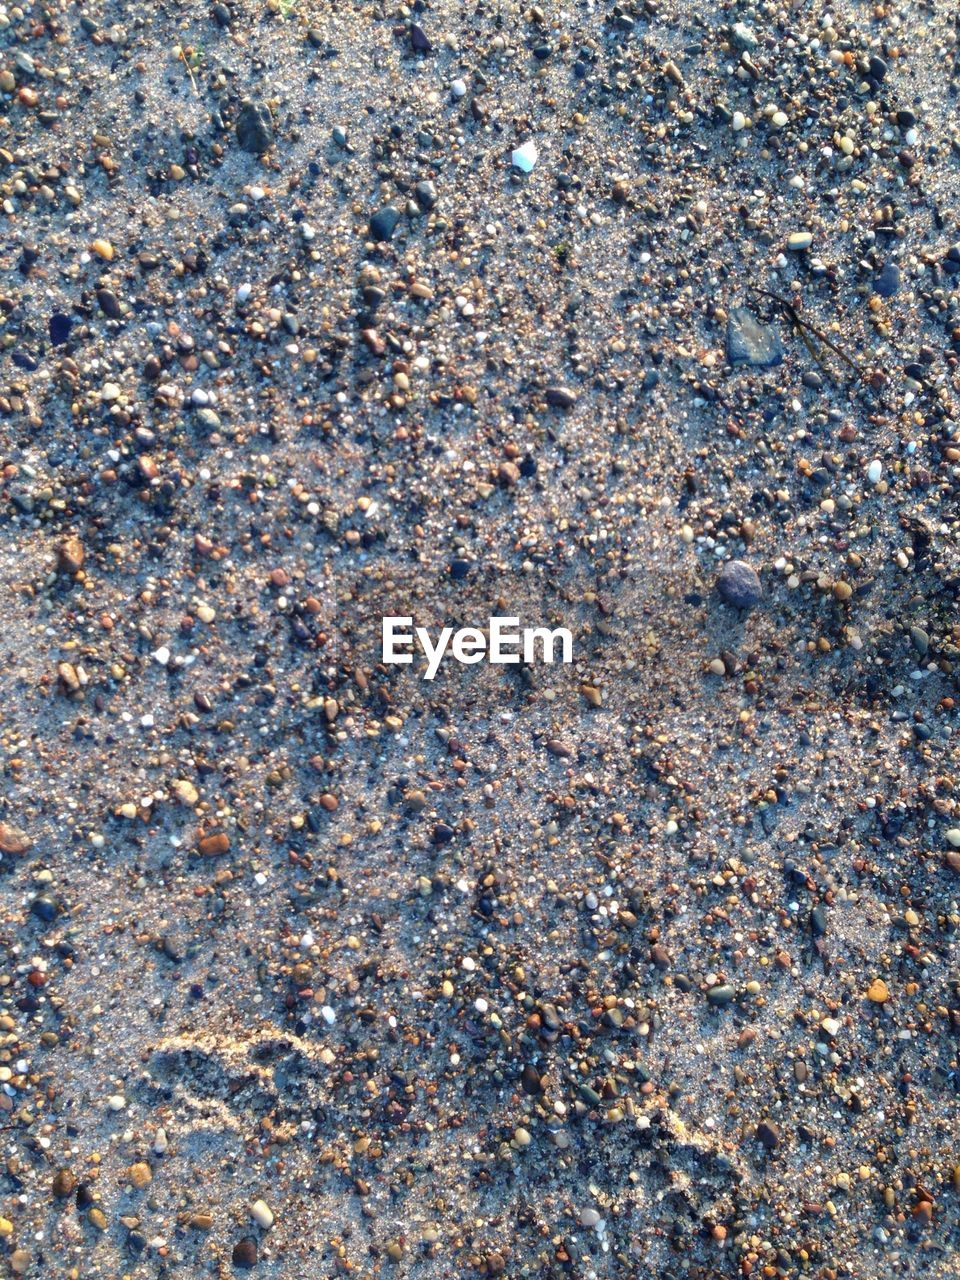 backgrounds, full frame, textured, abstract, pattern, no people, close-up, day, nature, marble, outdoors, beach, satellite view